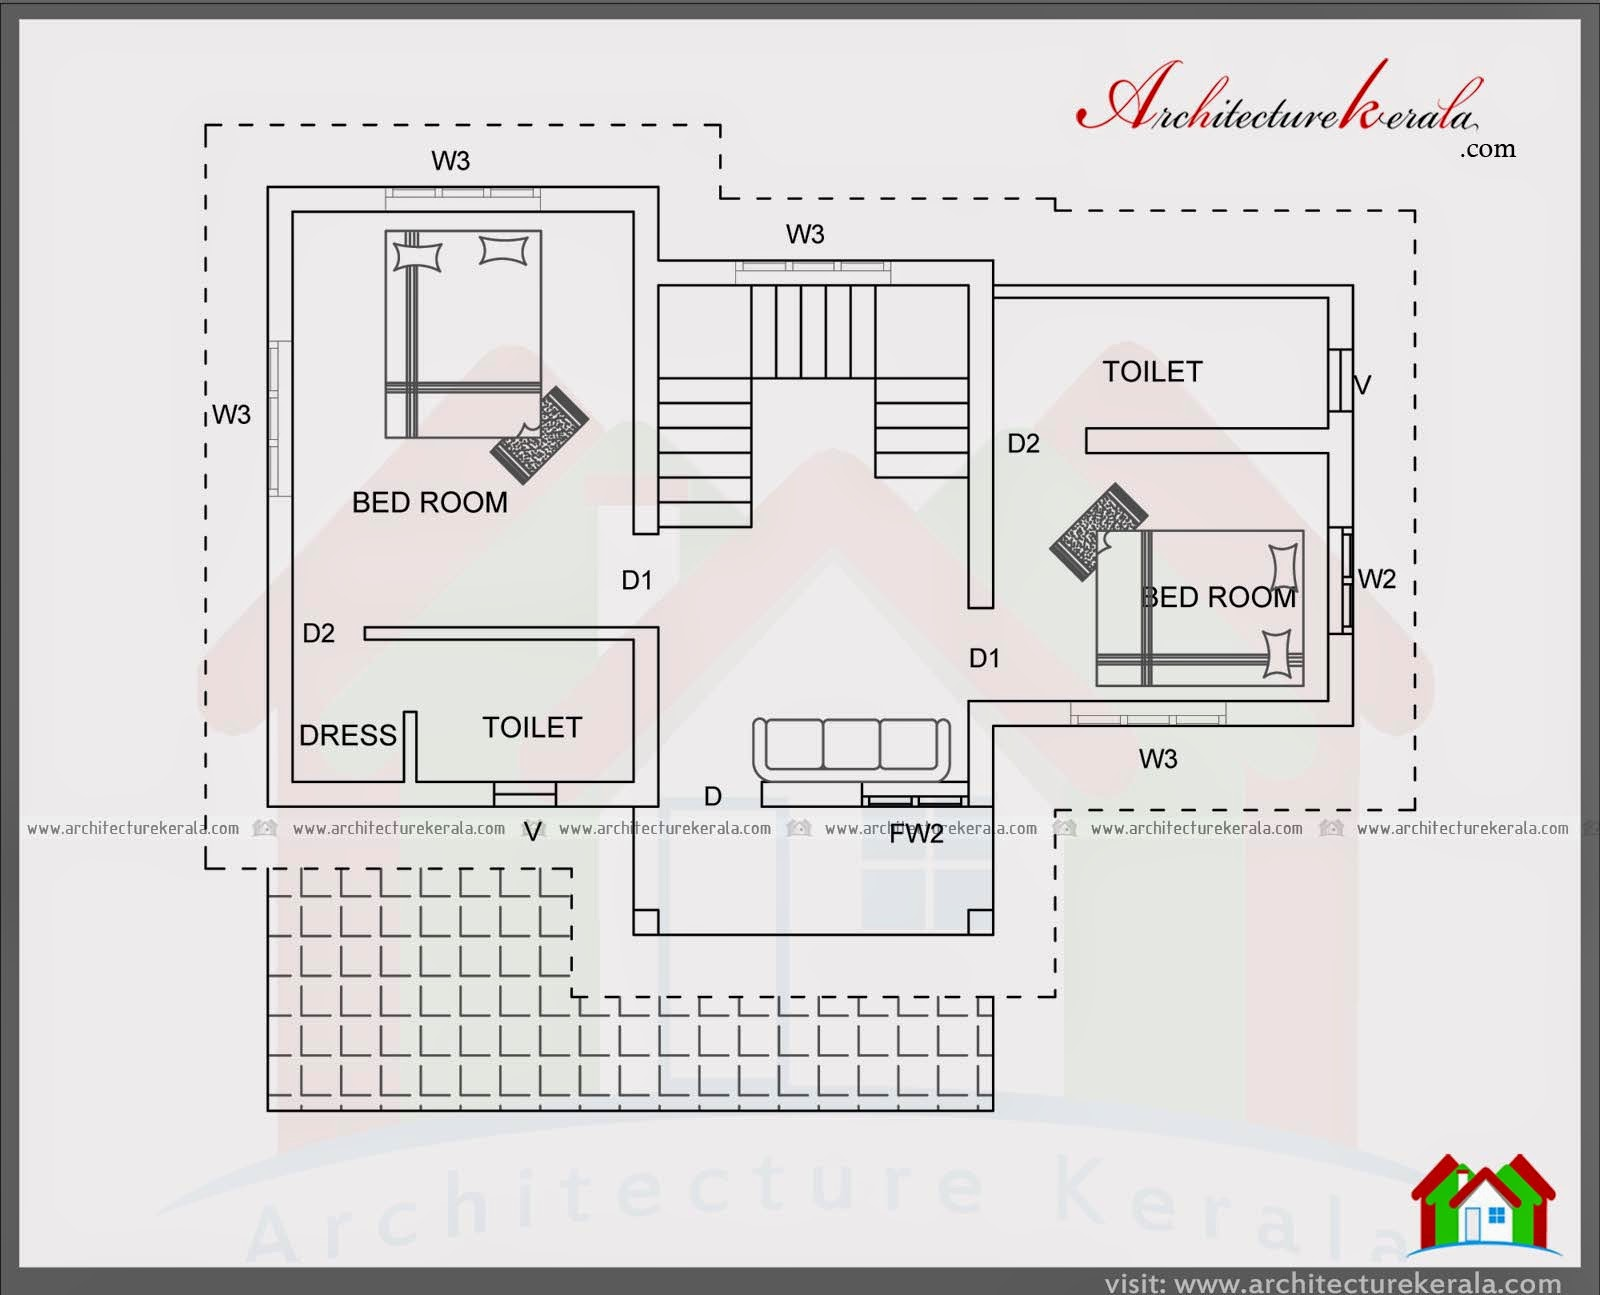 4 bedroom house plan in 1400 square feet architecture kerala for 4 bedroom house plans kerala style architect